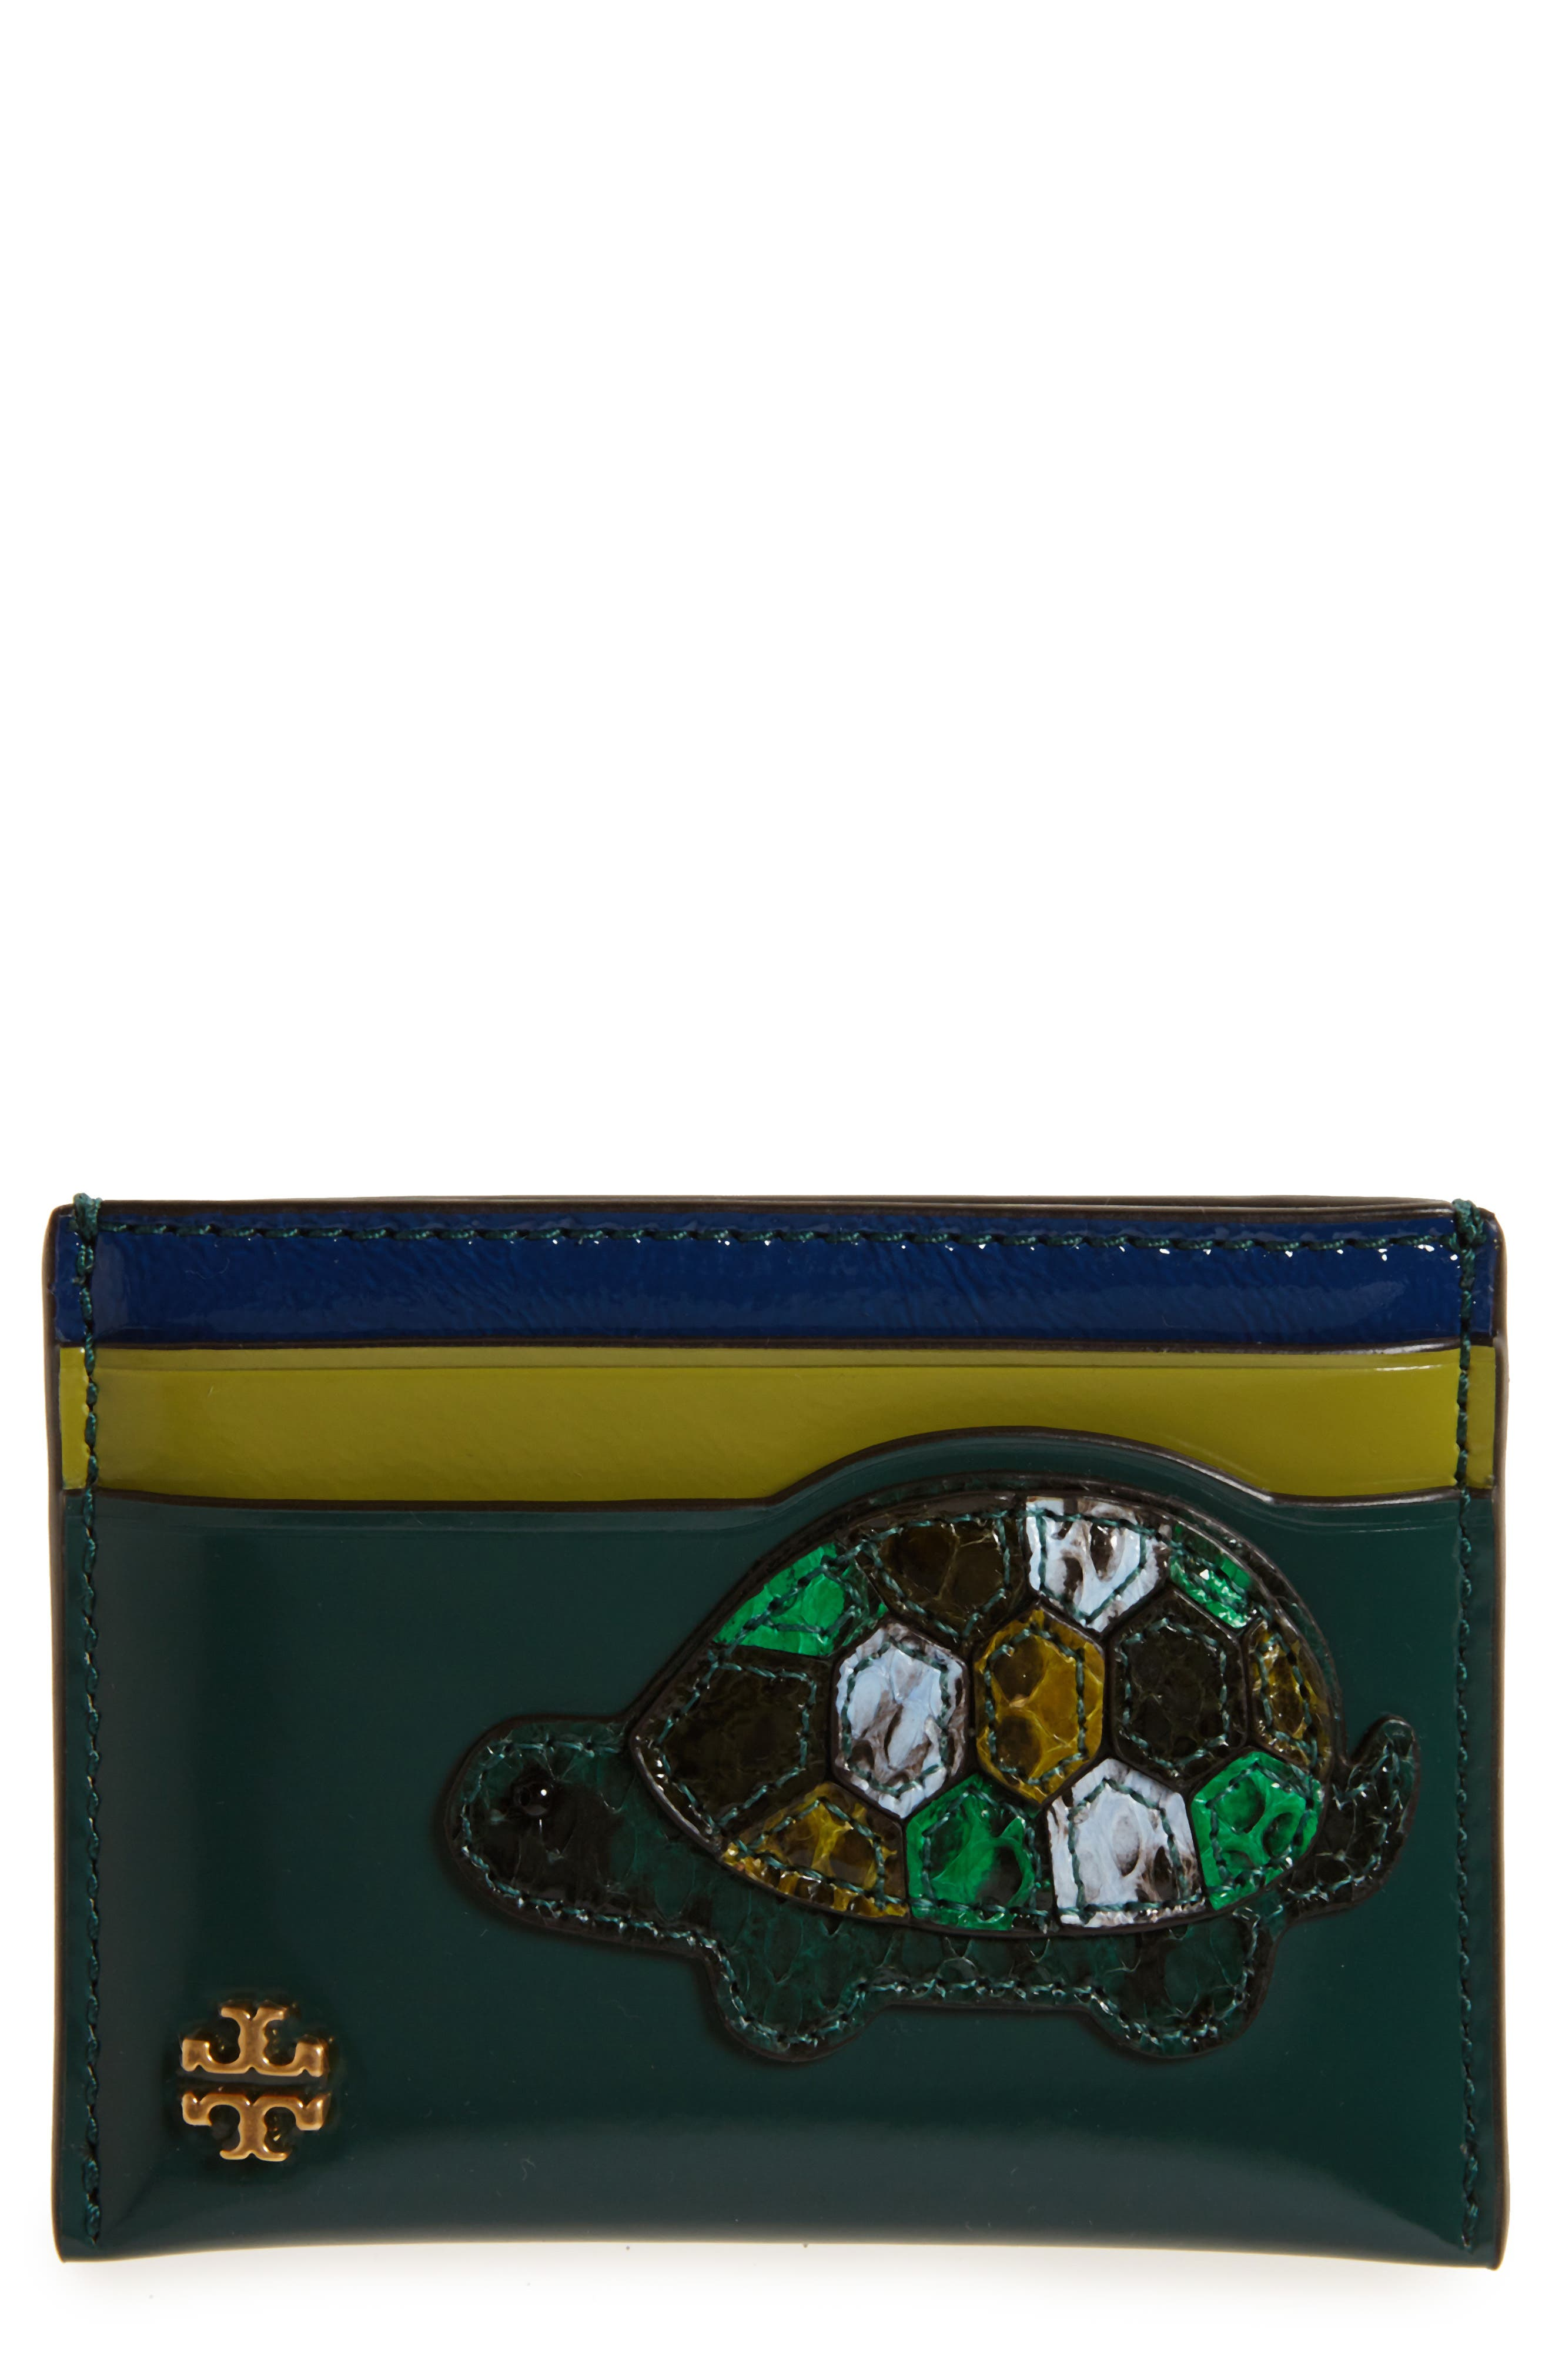 Turtle Appliqué Leather & Genuine Snakeskin Card Case,                             Main thumbnail 1, color,                             Malachite